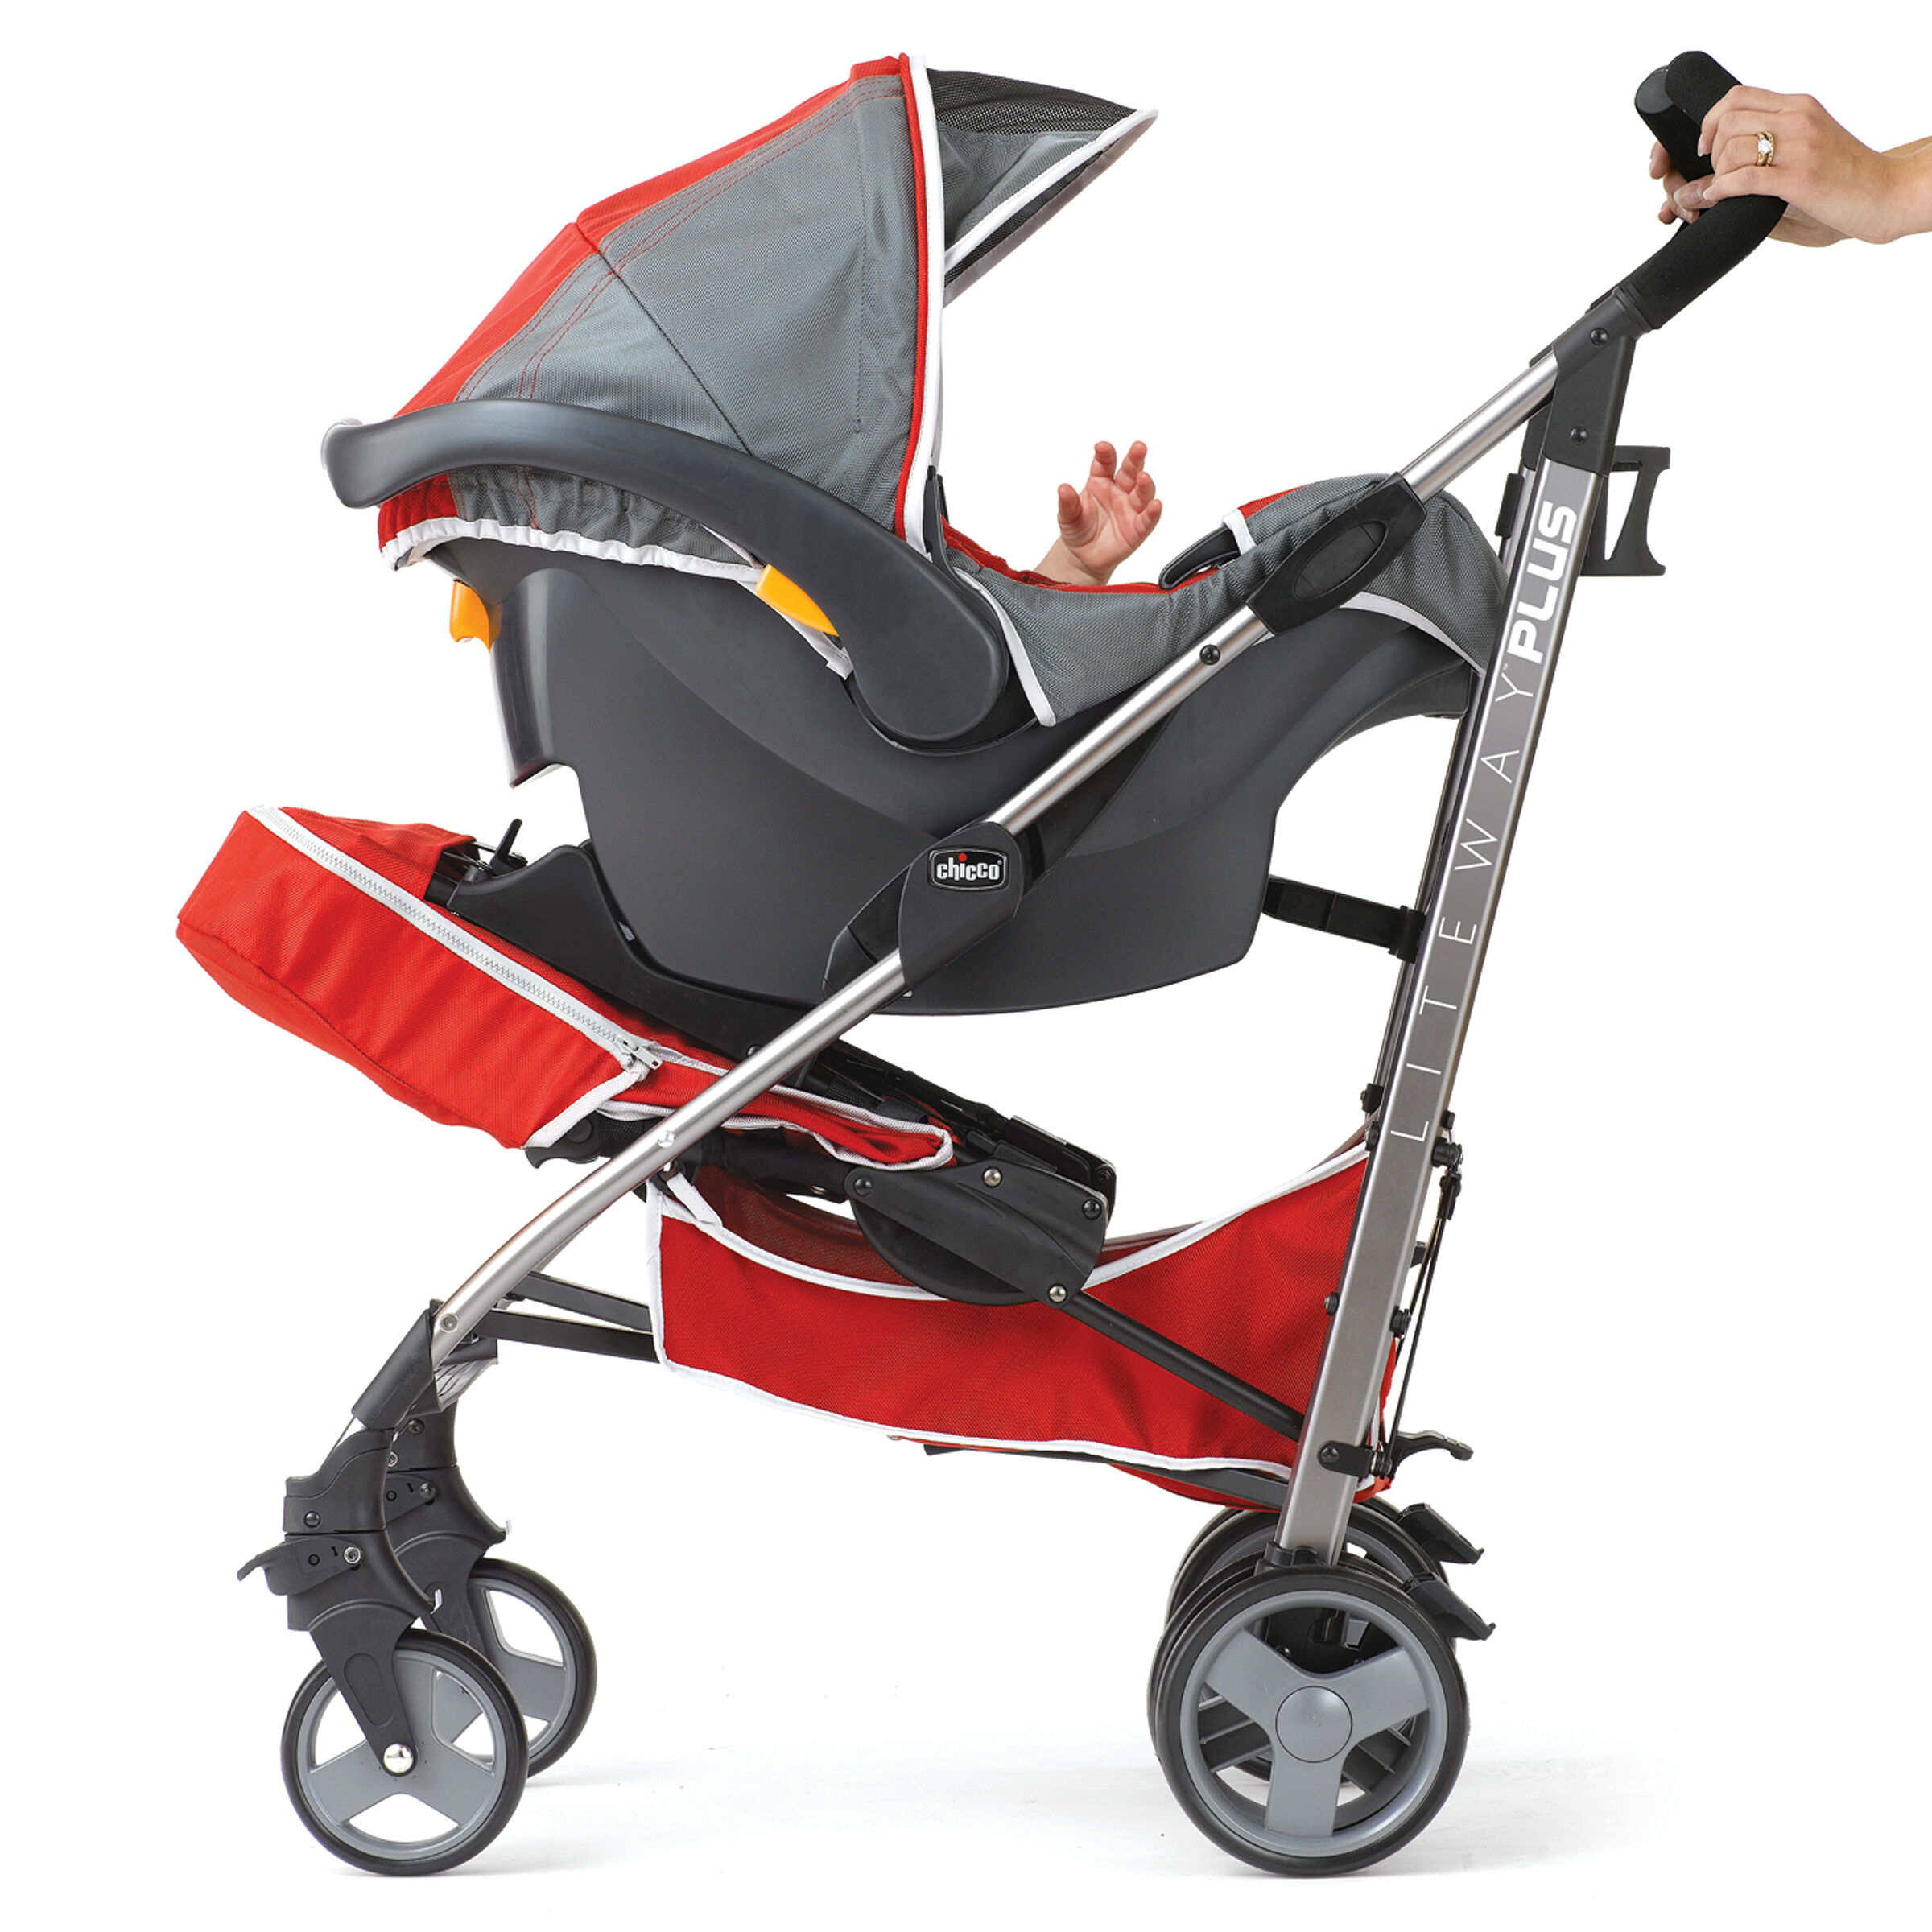 Chicco Stroller On Sale Chicco Liteway Plus 2 In 1 Stroller Snapdragon